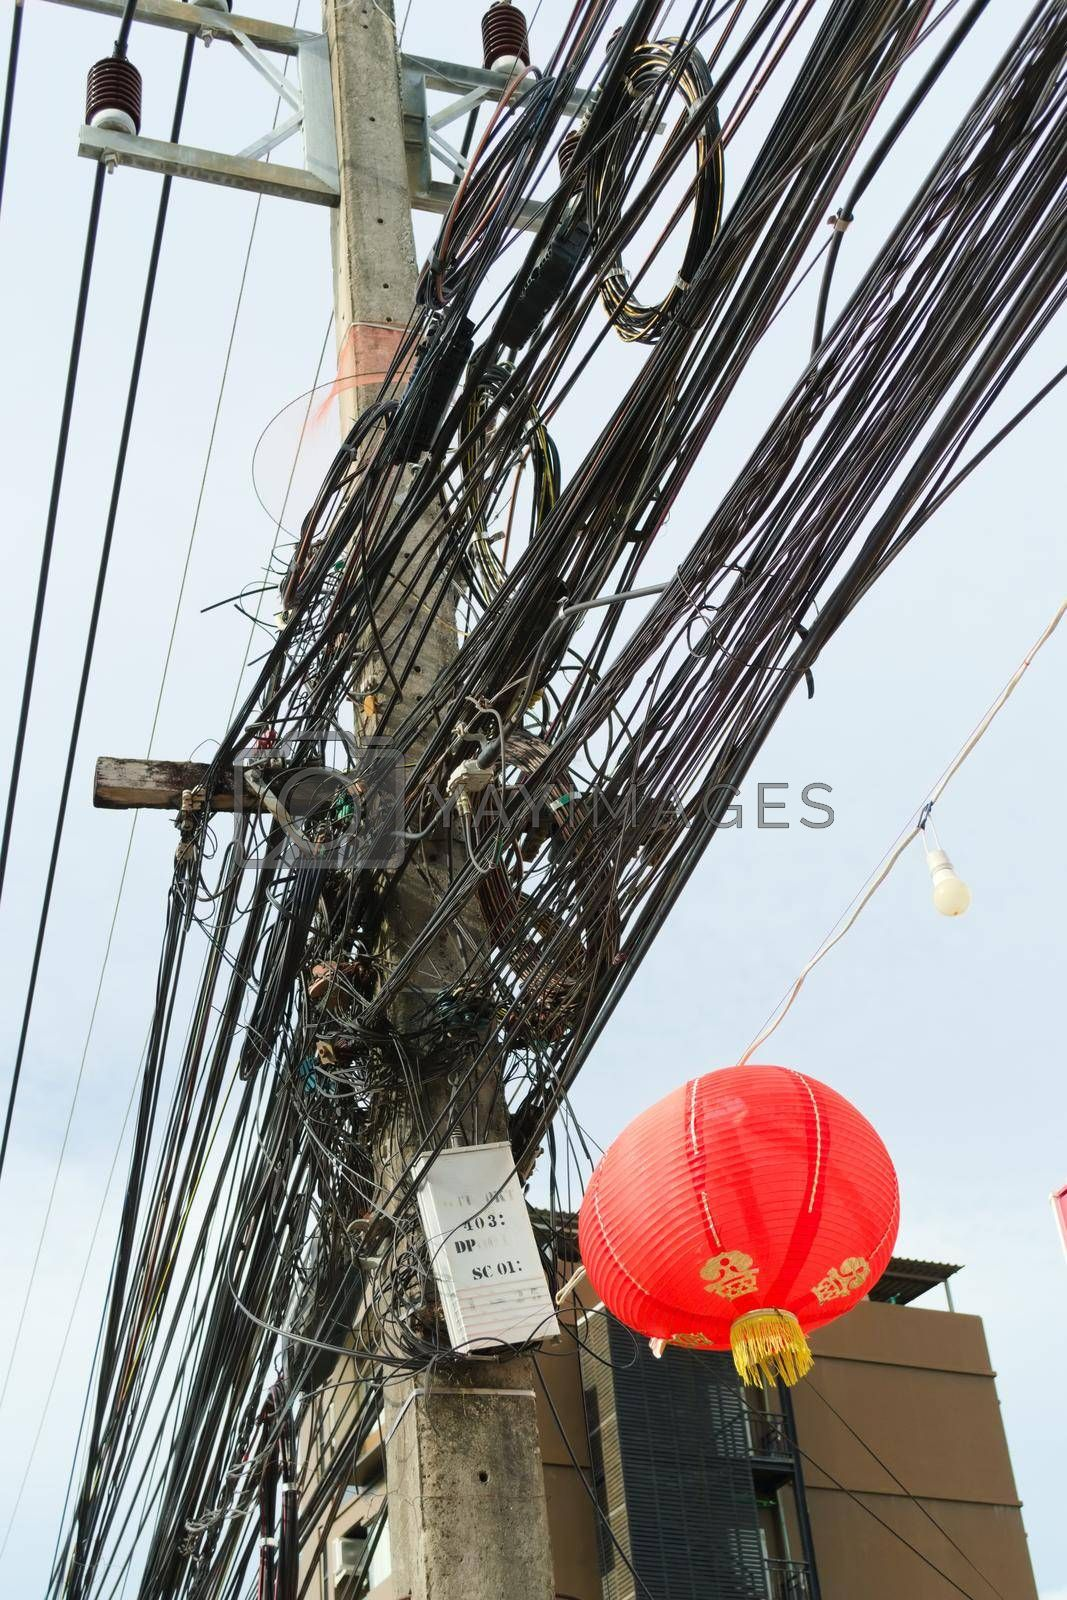 Royalty free image of Chaotic, messy cables on a pole in Phuket, Thailand. by hernan_hyper